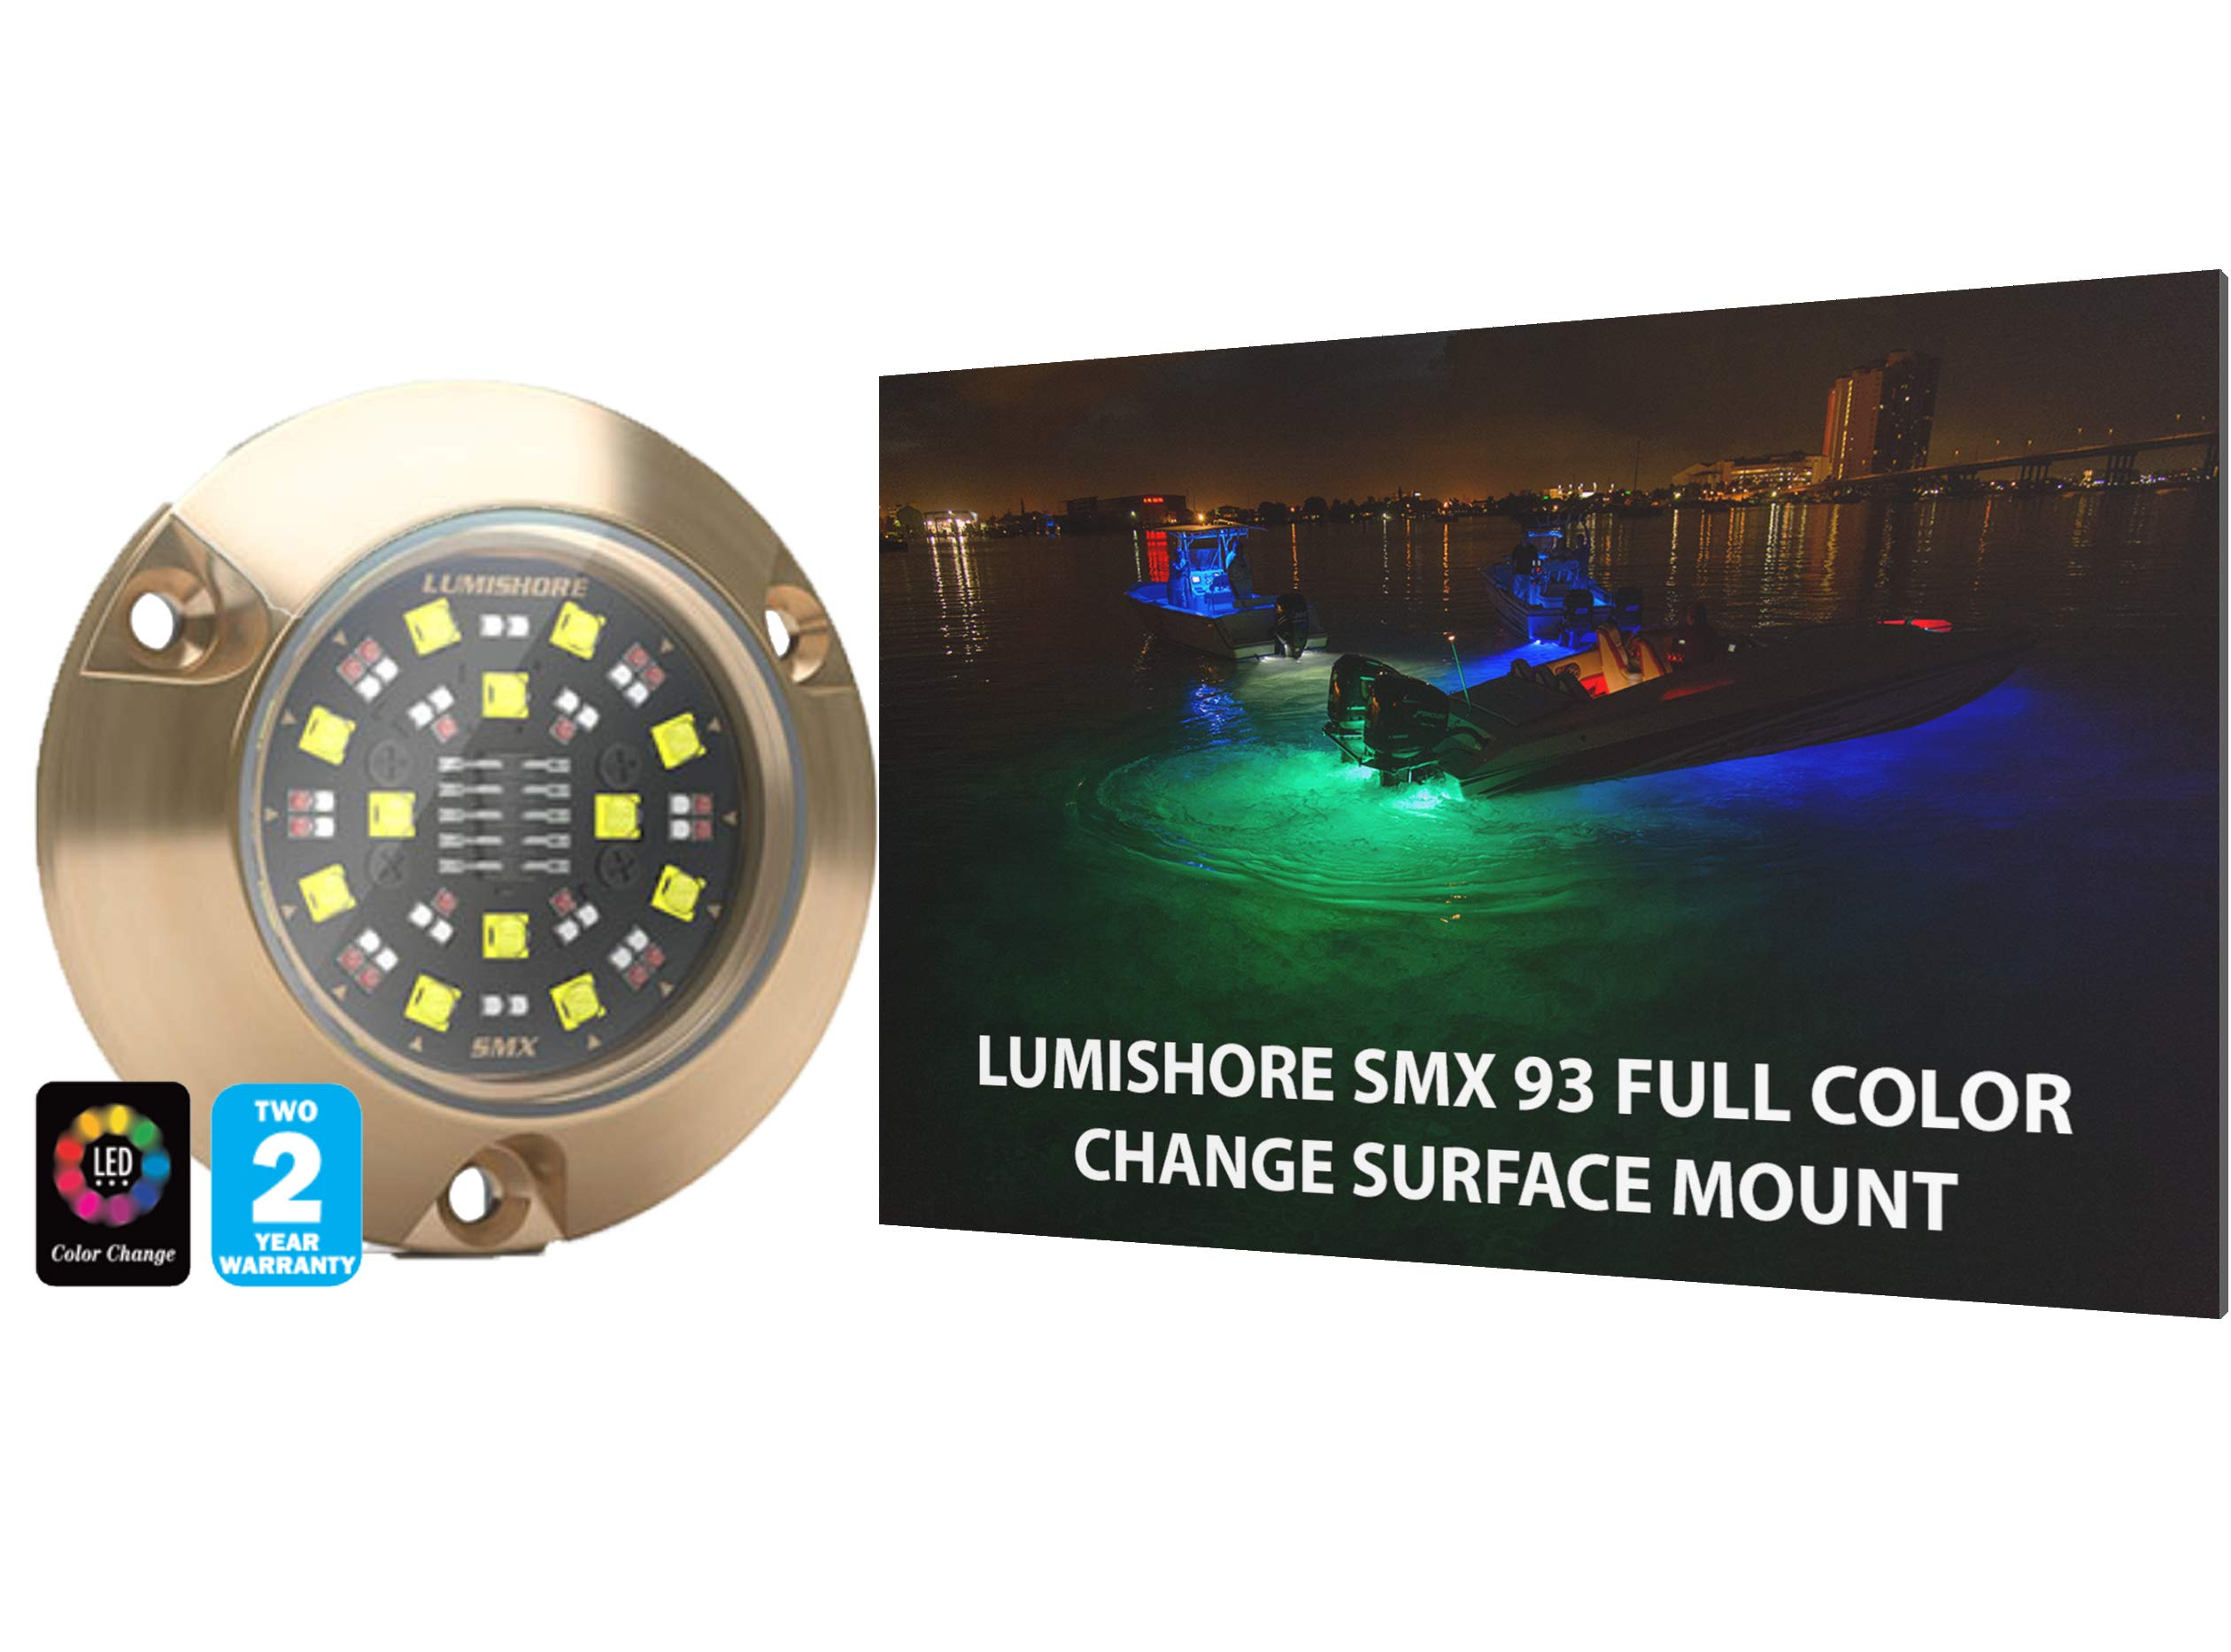 Lumishore SMX93, Full Color Spectrum Select Color Change,4000 Lumens, 60-0315